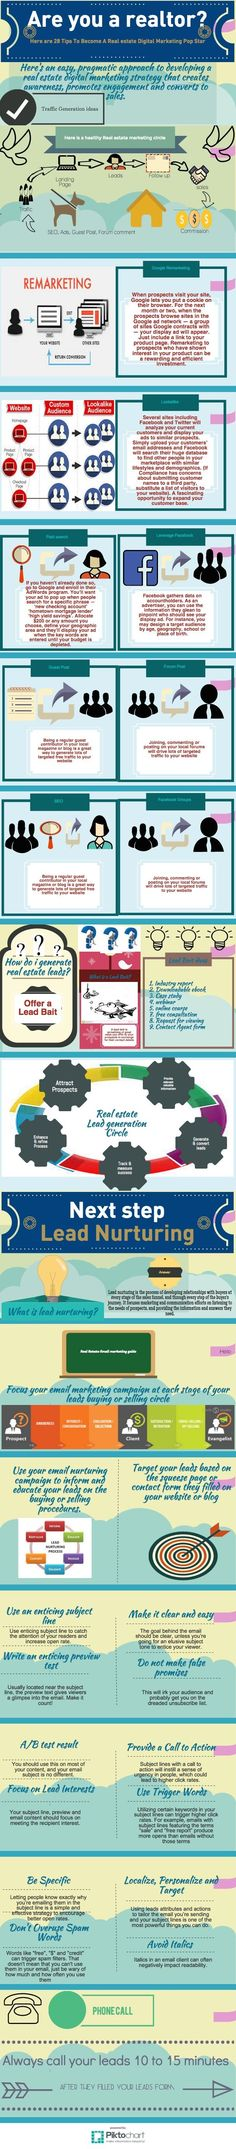 28 tips for becoming a realtor digital marketing pop star - #infographic #becomingarealtor